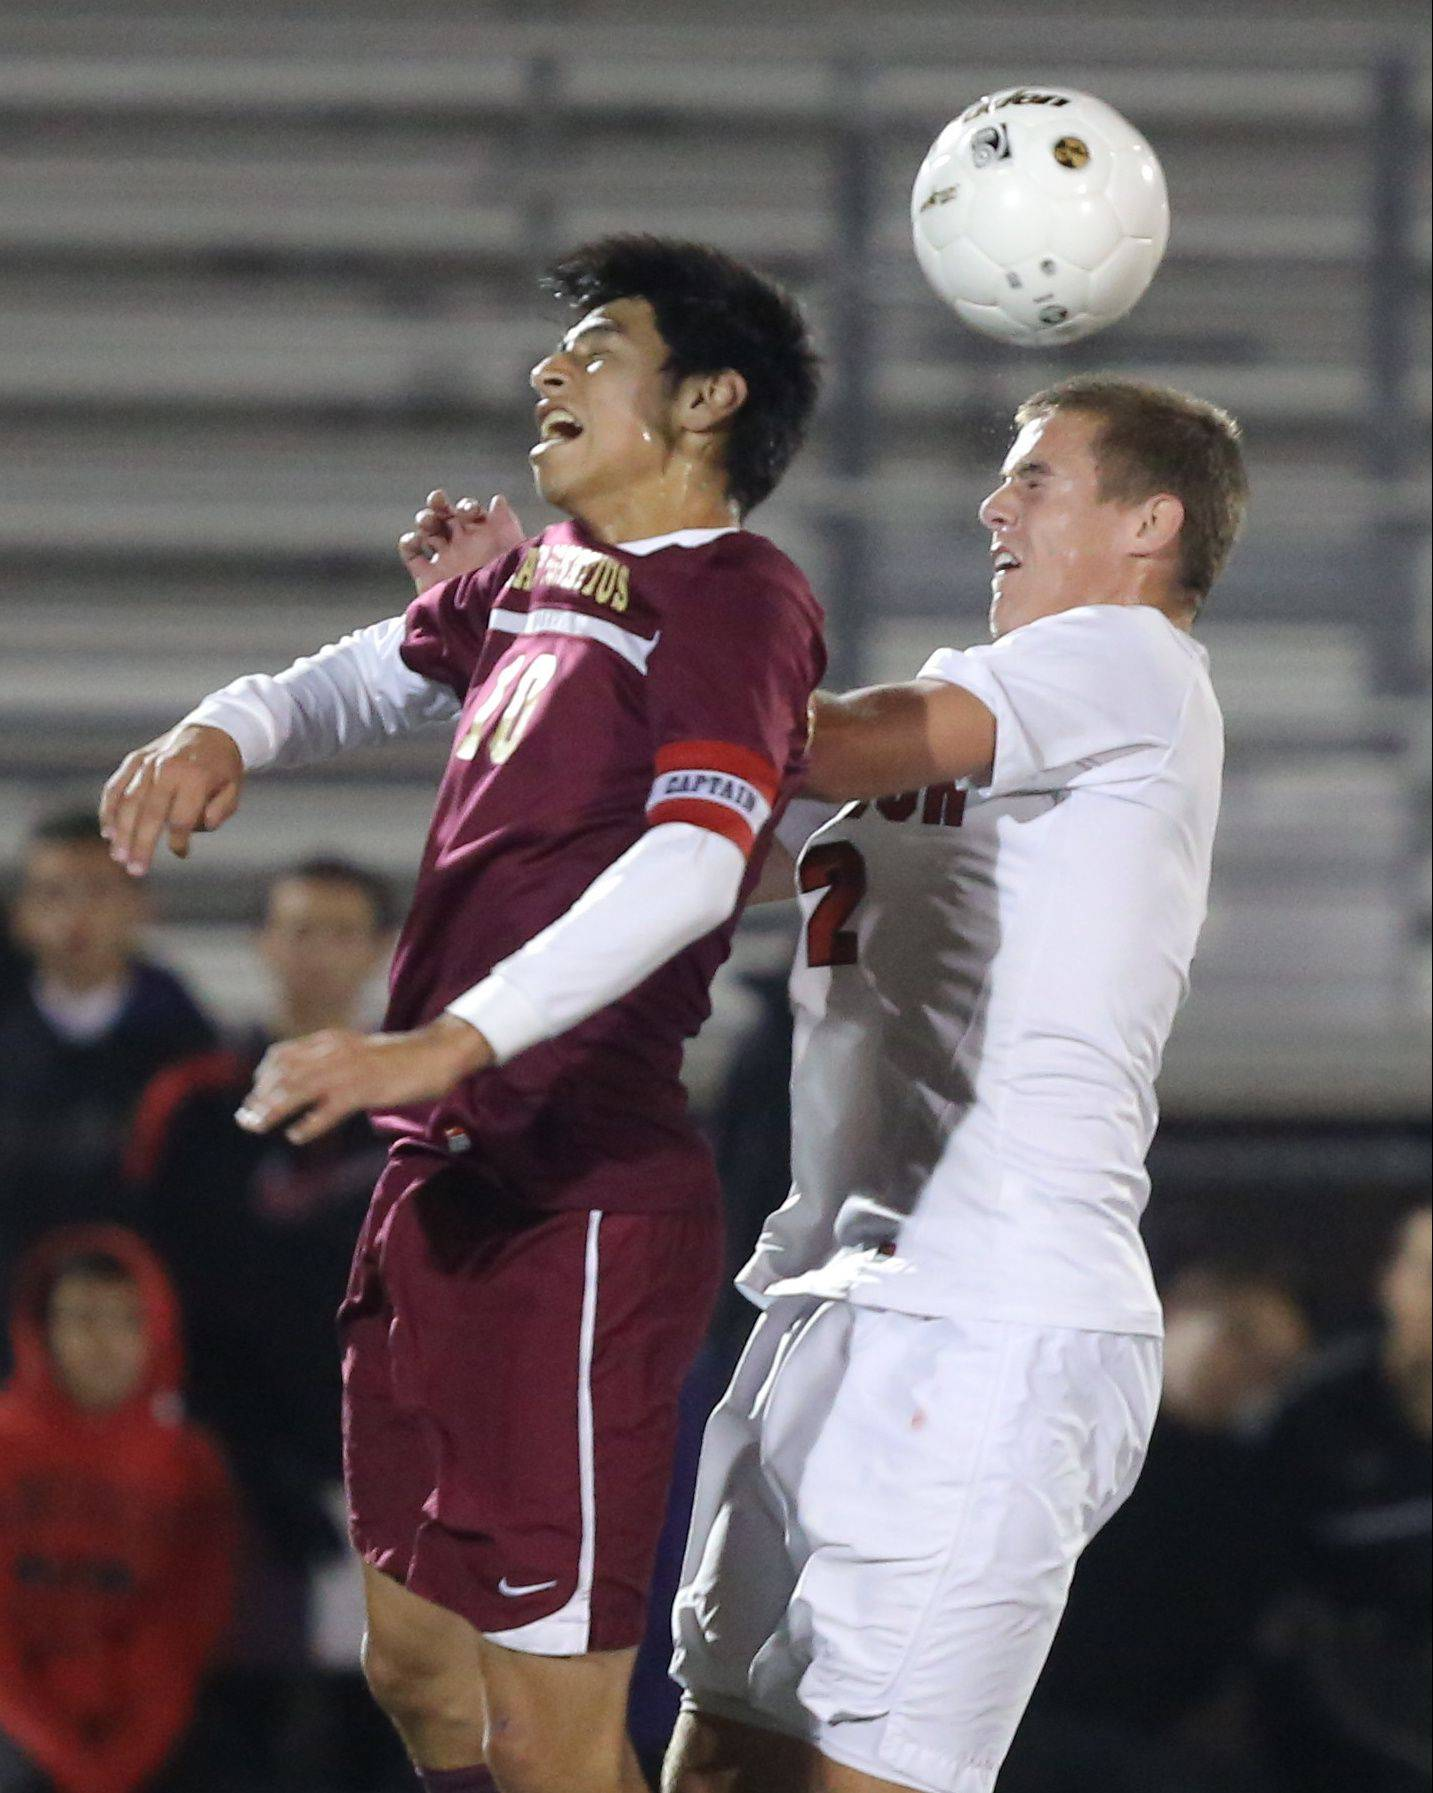 St. Ignatius' Marco Sanchez, left, and Antioch's Eric Pedersen go up for a header during the Class 2A supersectional Tuesday night at Stevenson.